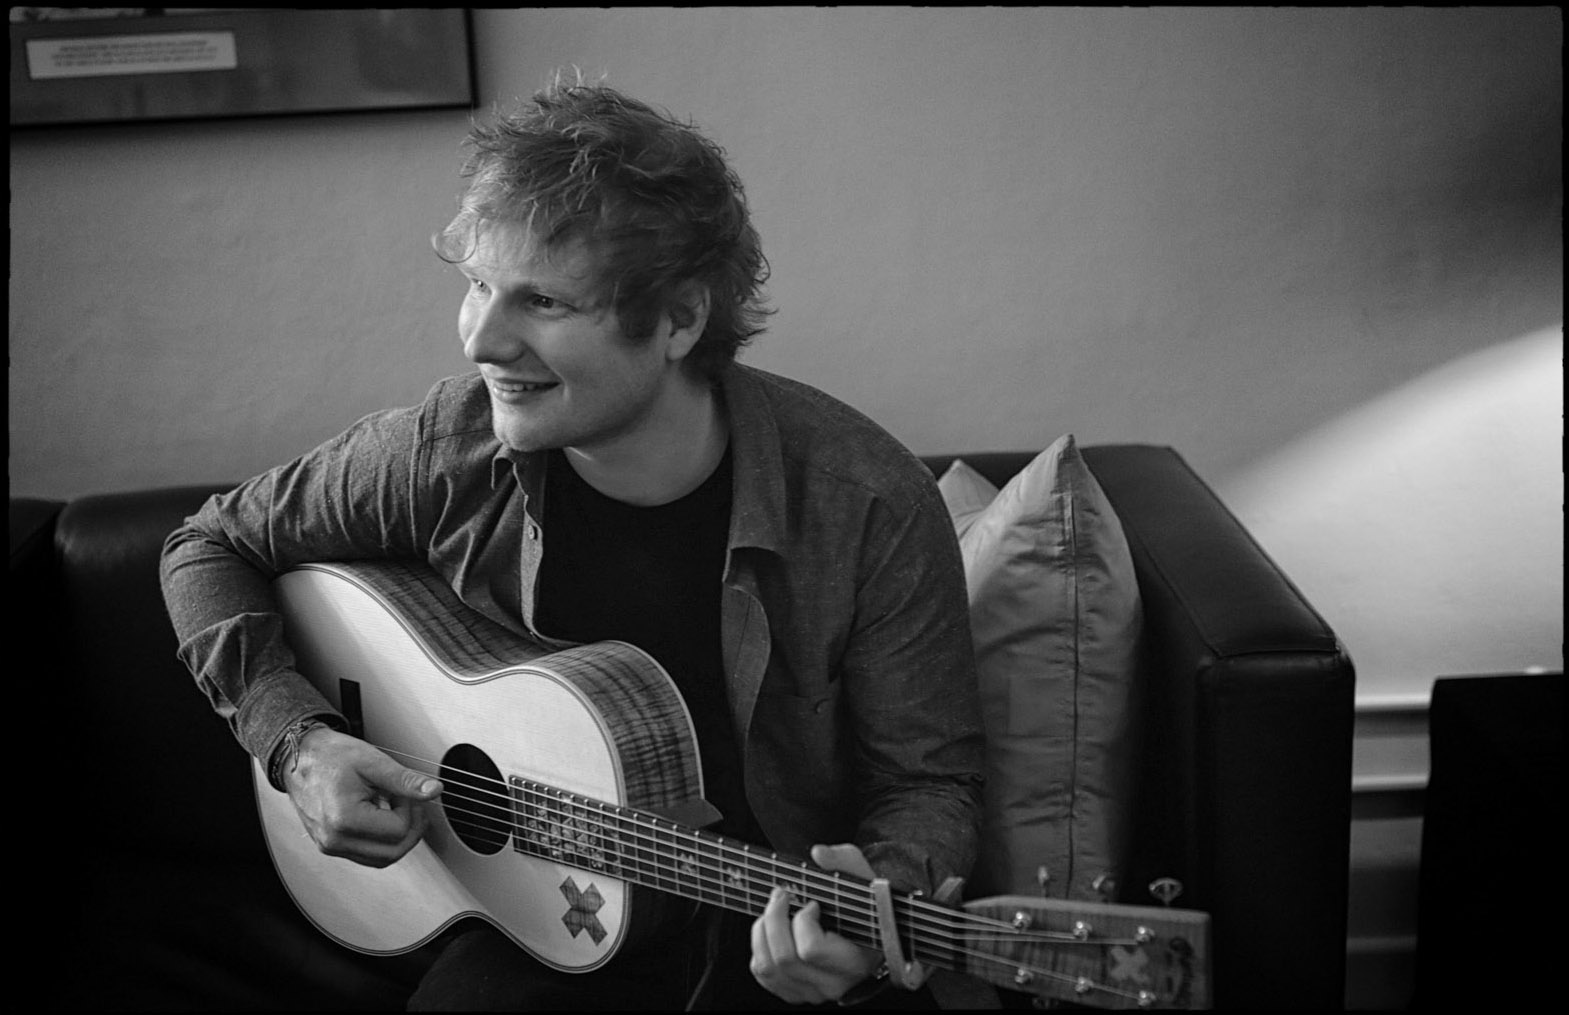 Ed Sheeran backstage at the Royal Albert Hall by Christie Goodwin